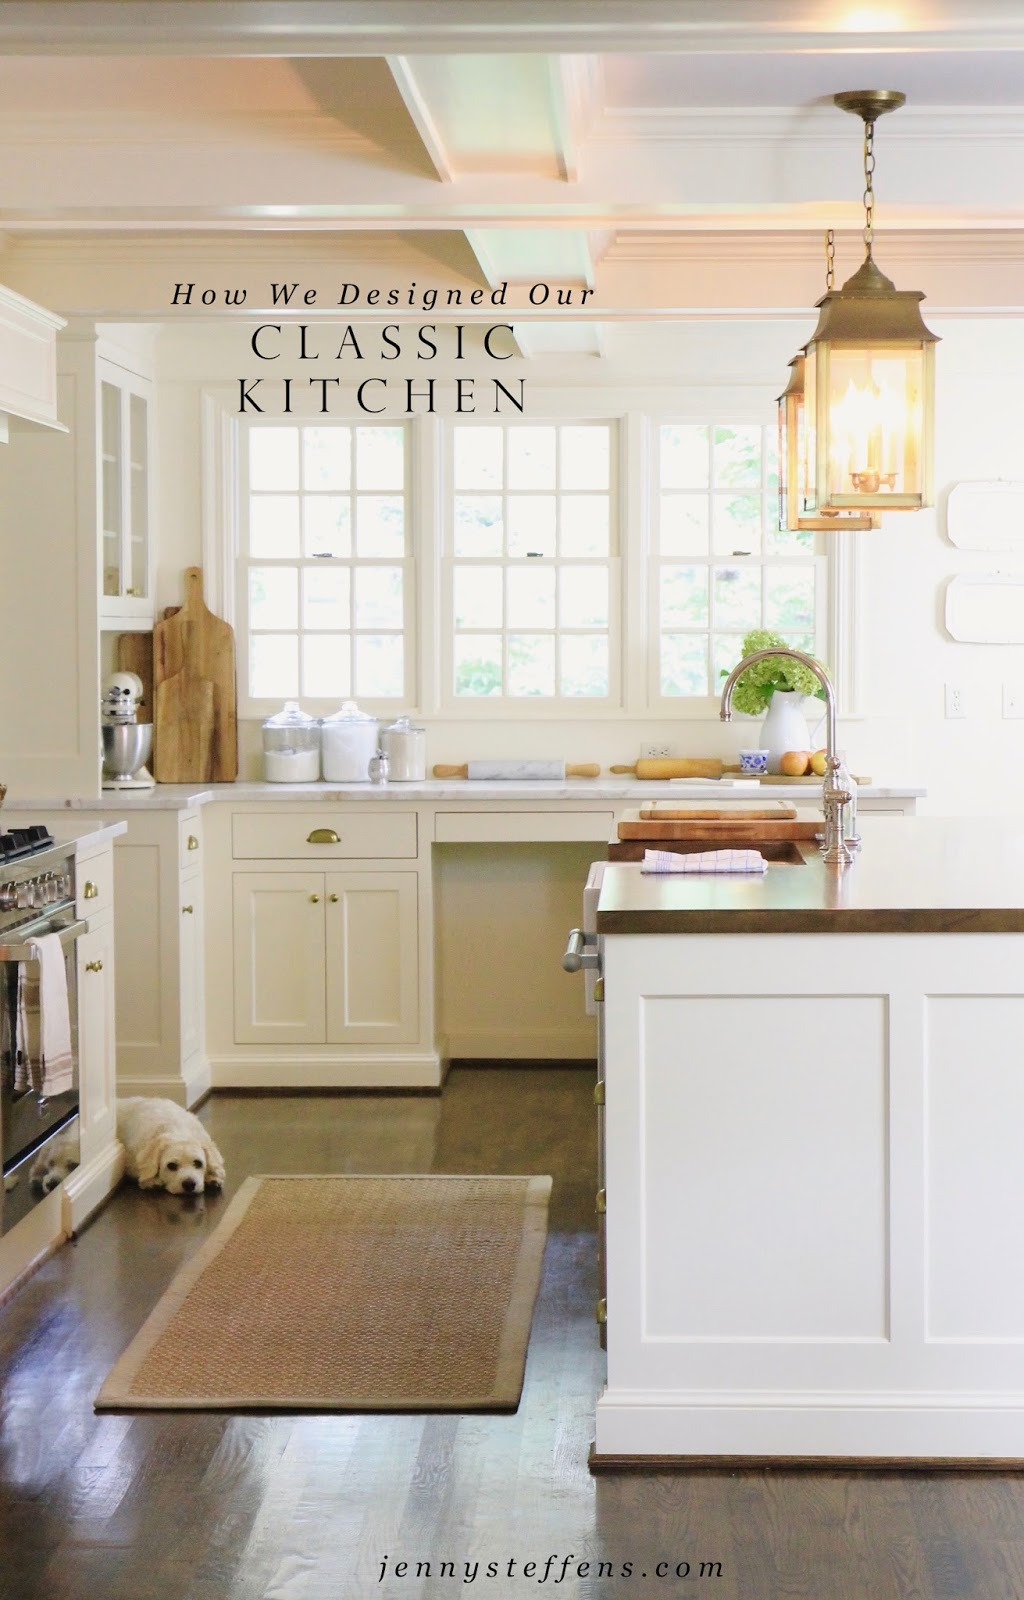 Jenny steffens hobick our classic white kitchen design - Kitchen design marble countertops ...